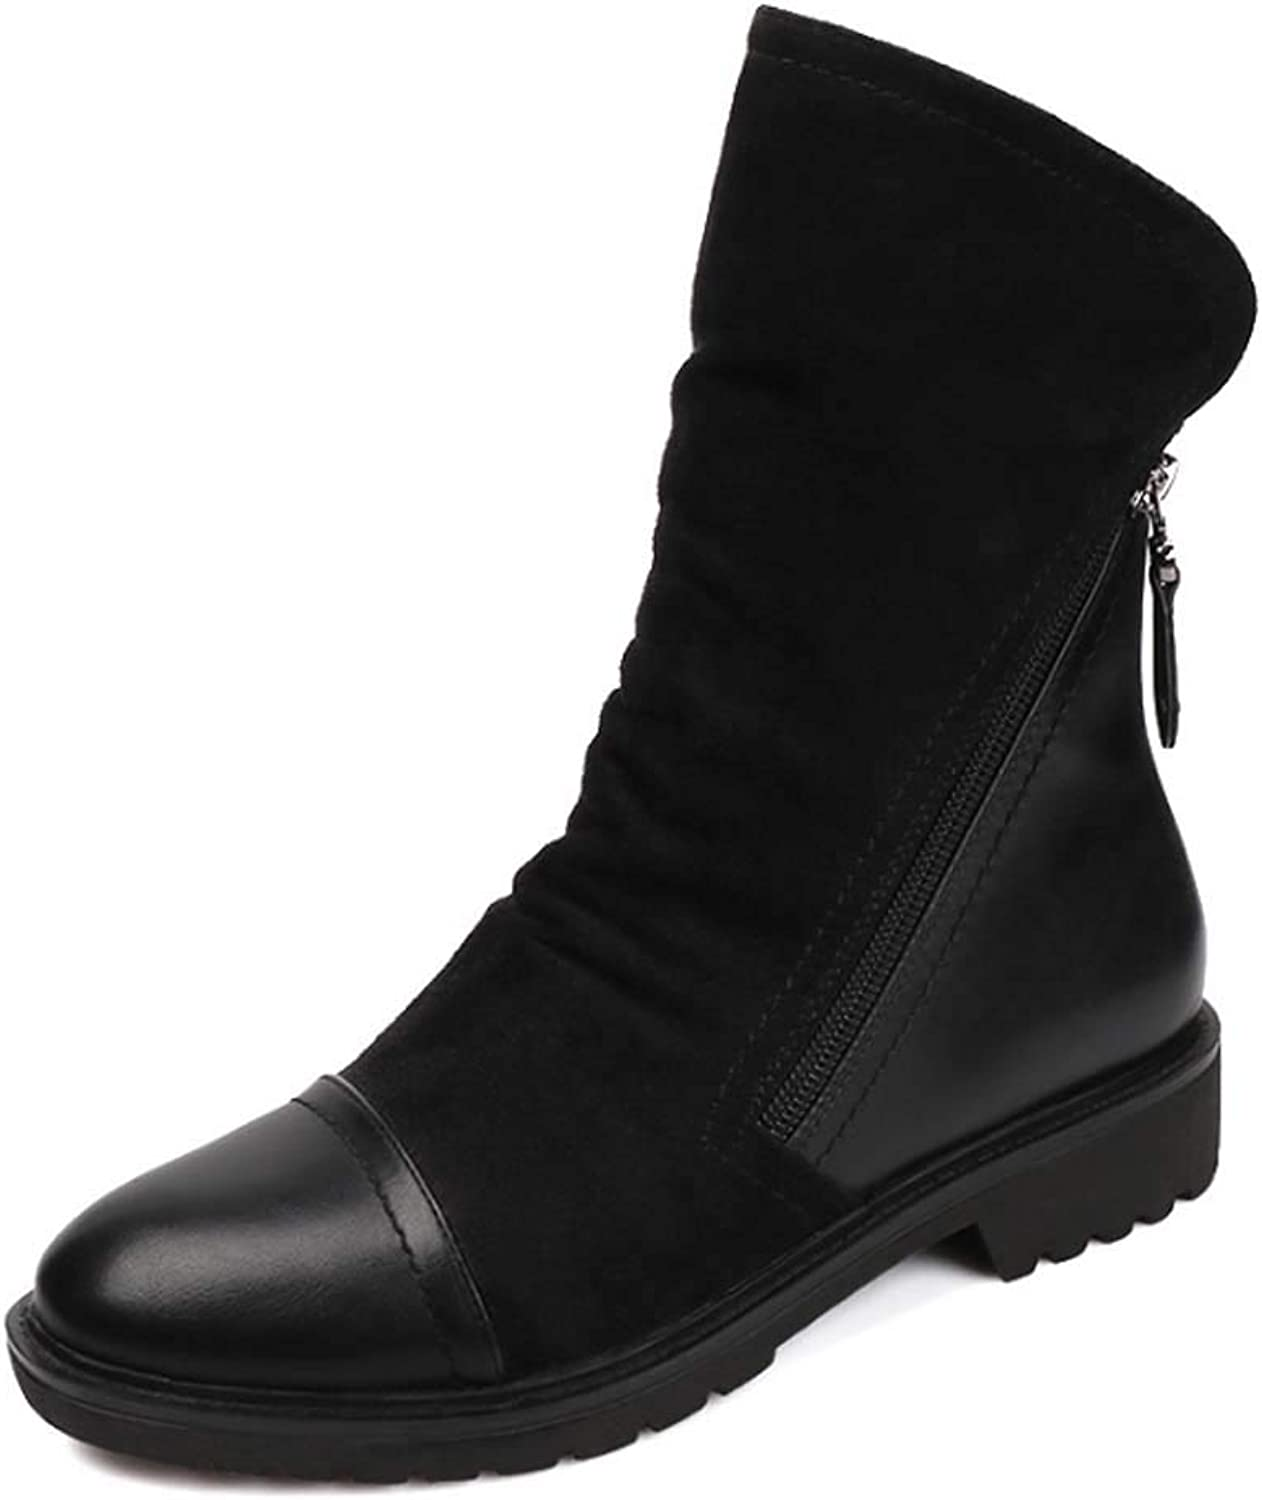 2d139bfd8a Women Martin Boots Leather Waterproof Classic Lace Short Ankle Boot Ladies  Casual Comfortable Low shoes Classic